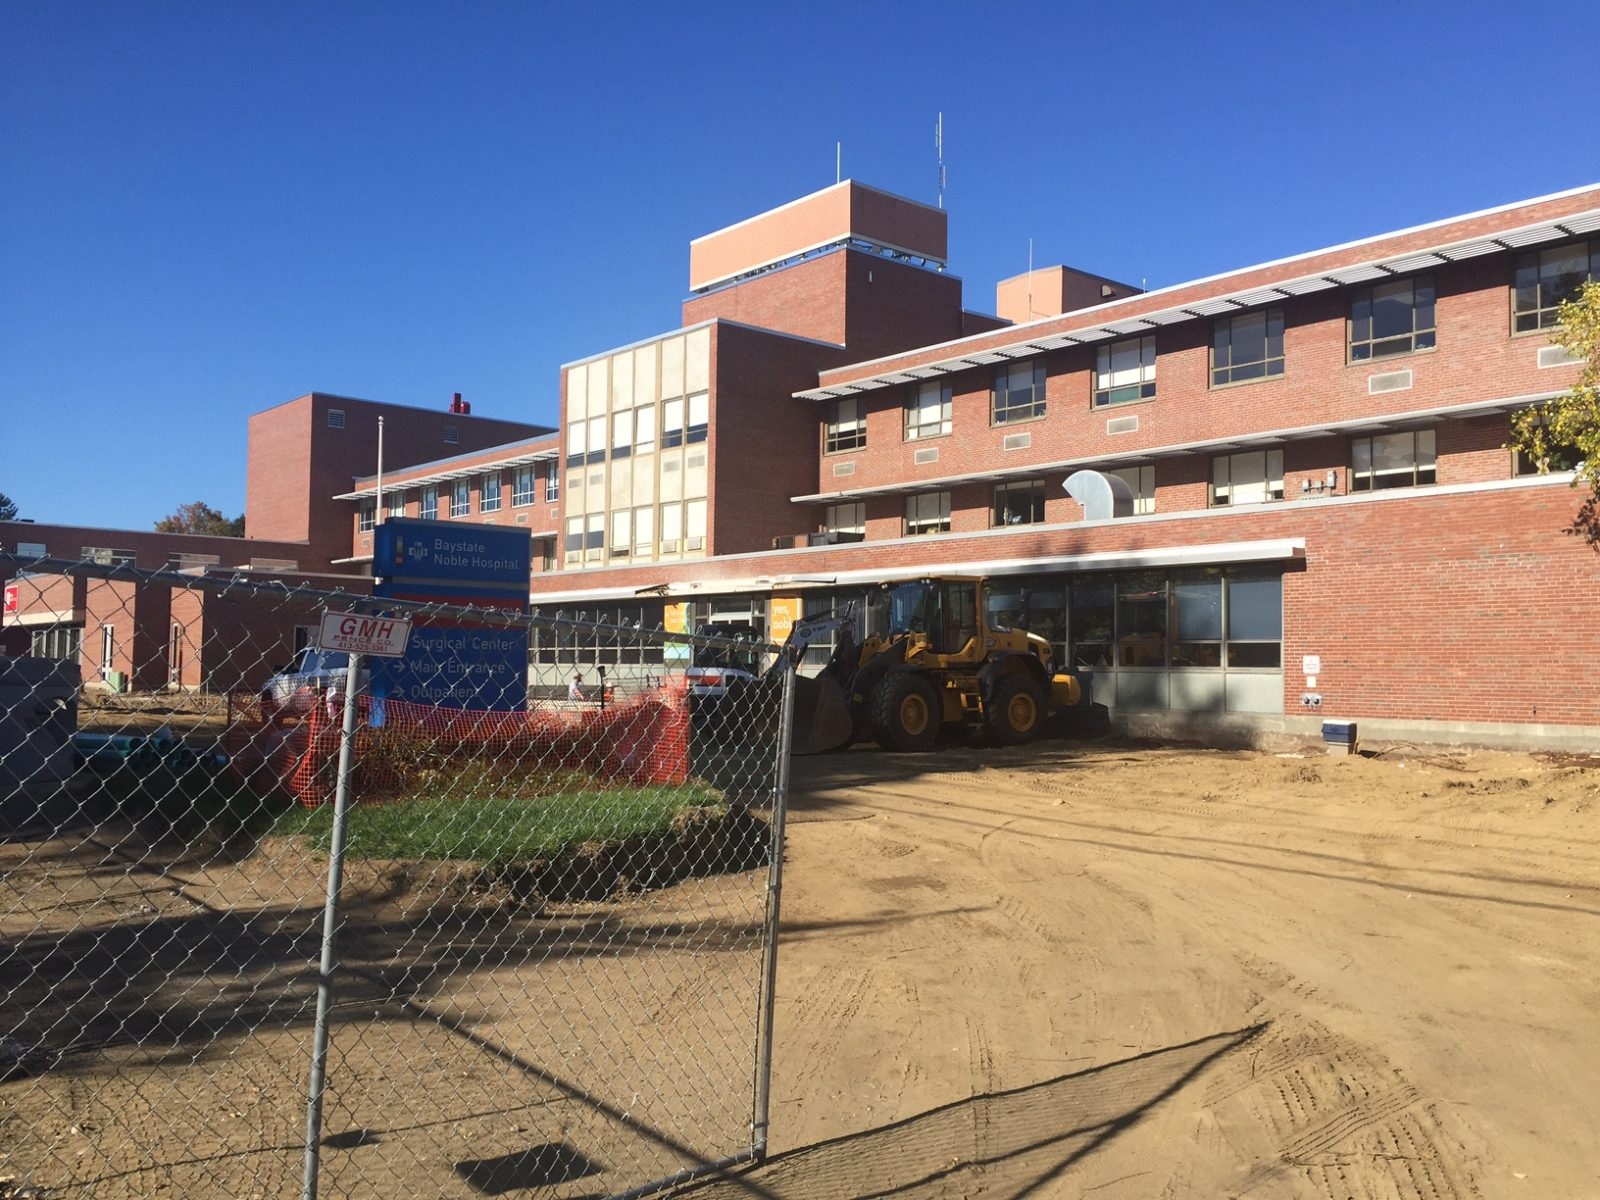 Construction underway for main entrance of Noble Hospital